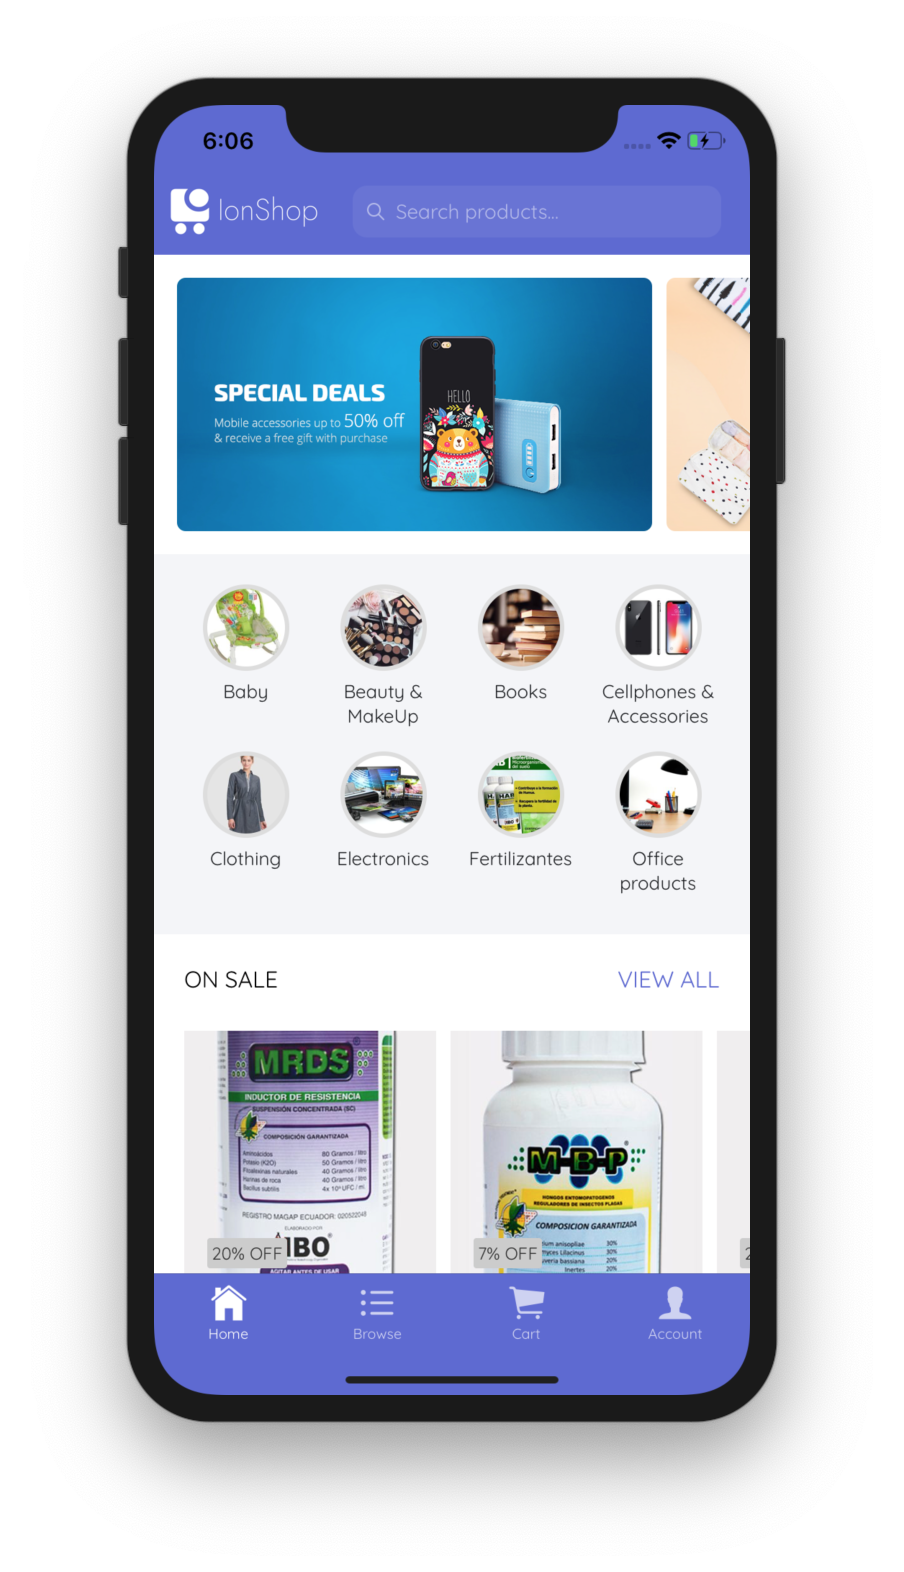 Ionshop-2-ionic-4-starter-template-for-e-commerce-based-apps